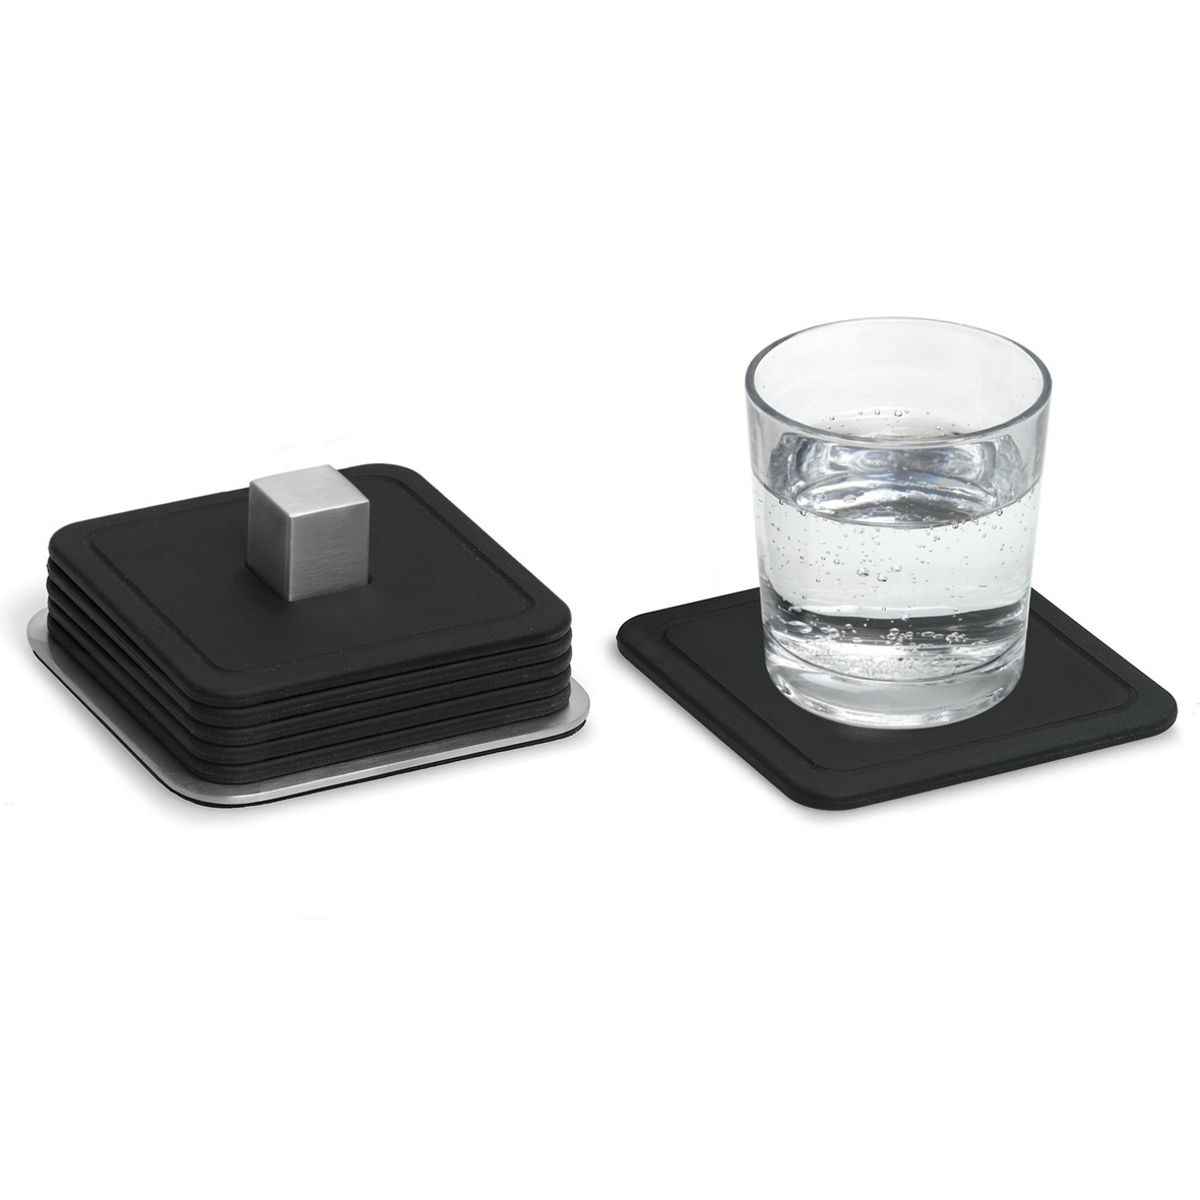 Blomus Coasters and Stand Set Coasters 9.5cm x 9.5cm, Stand H4cm